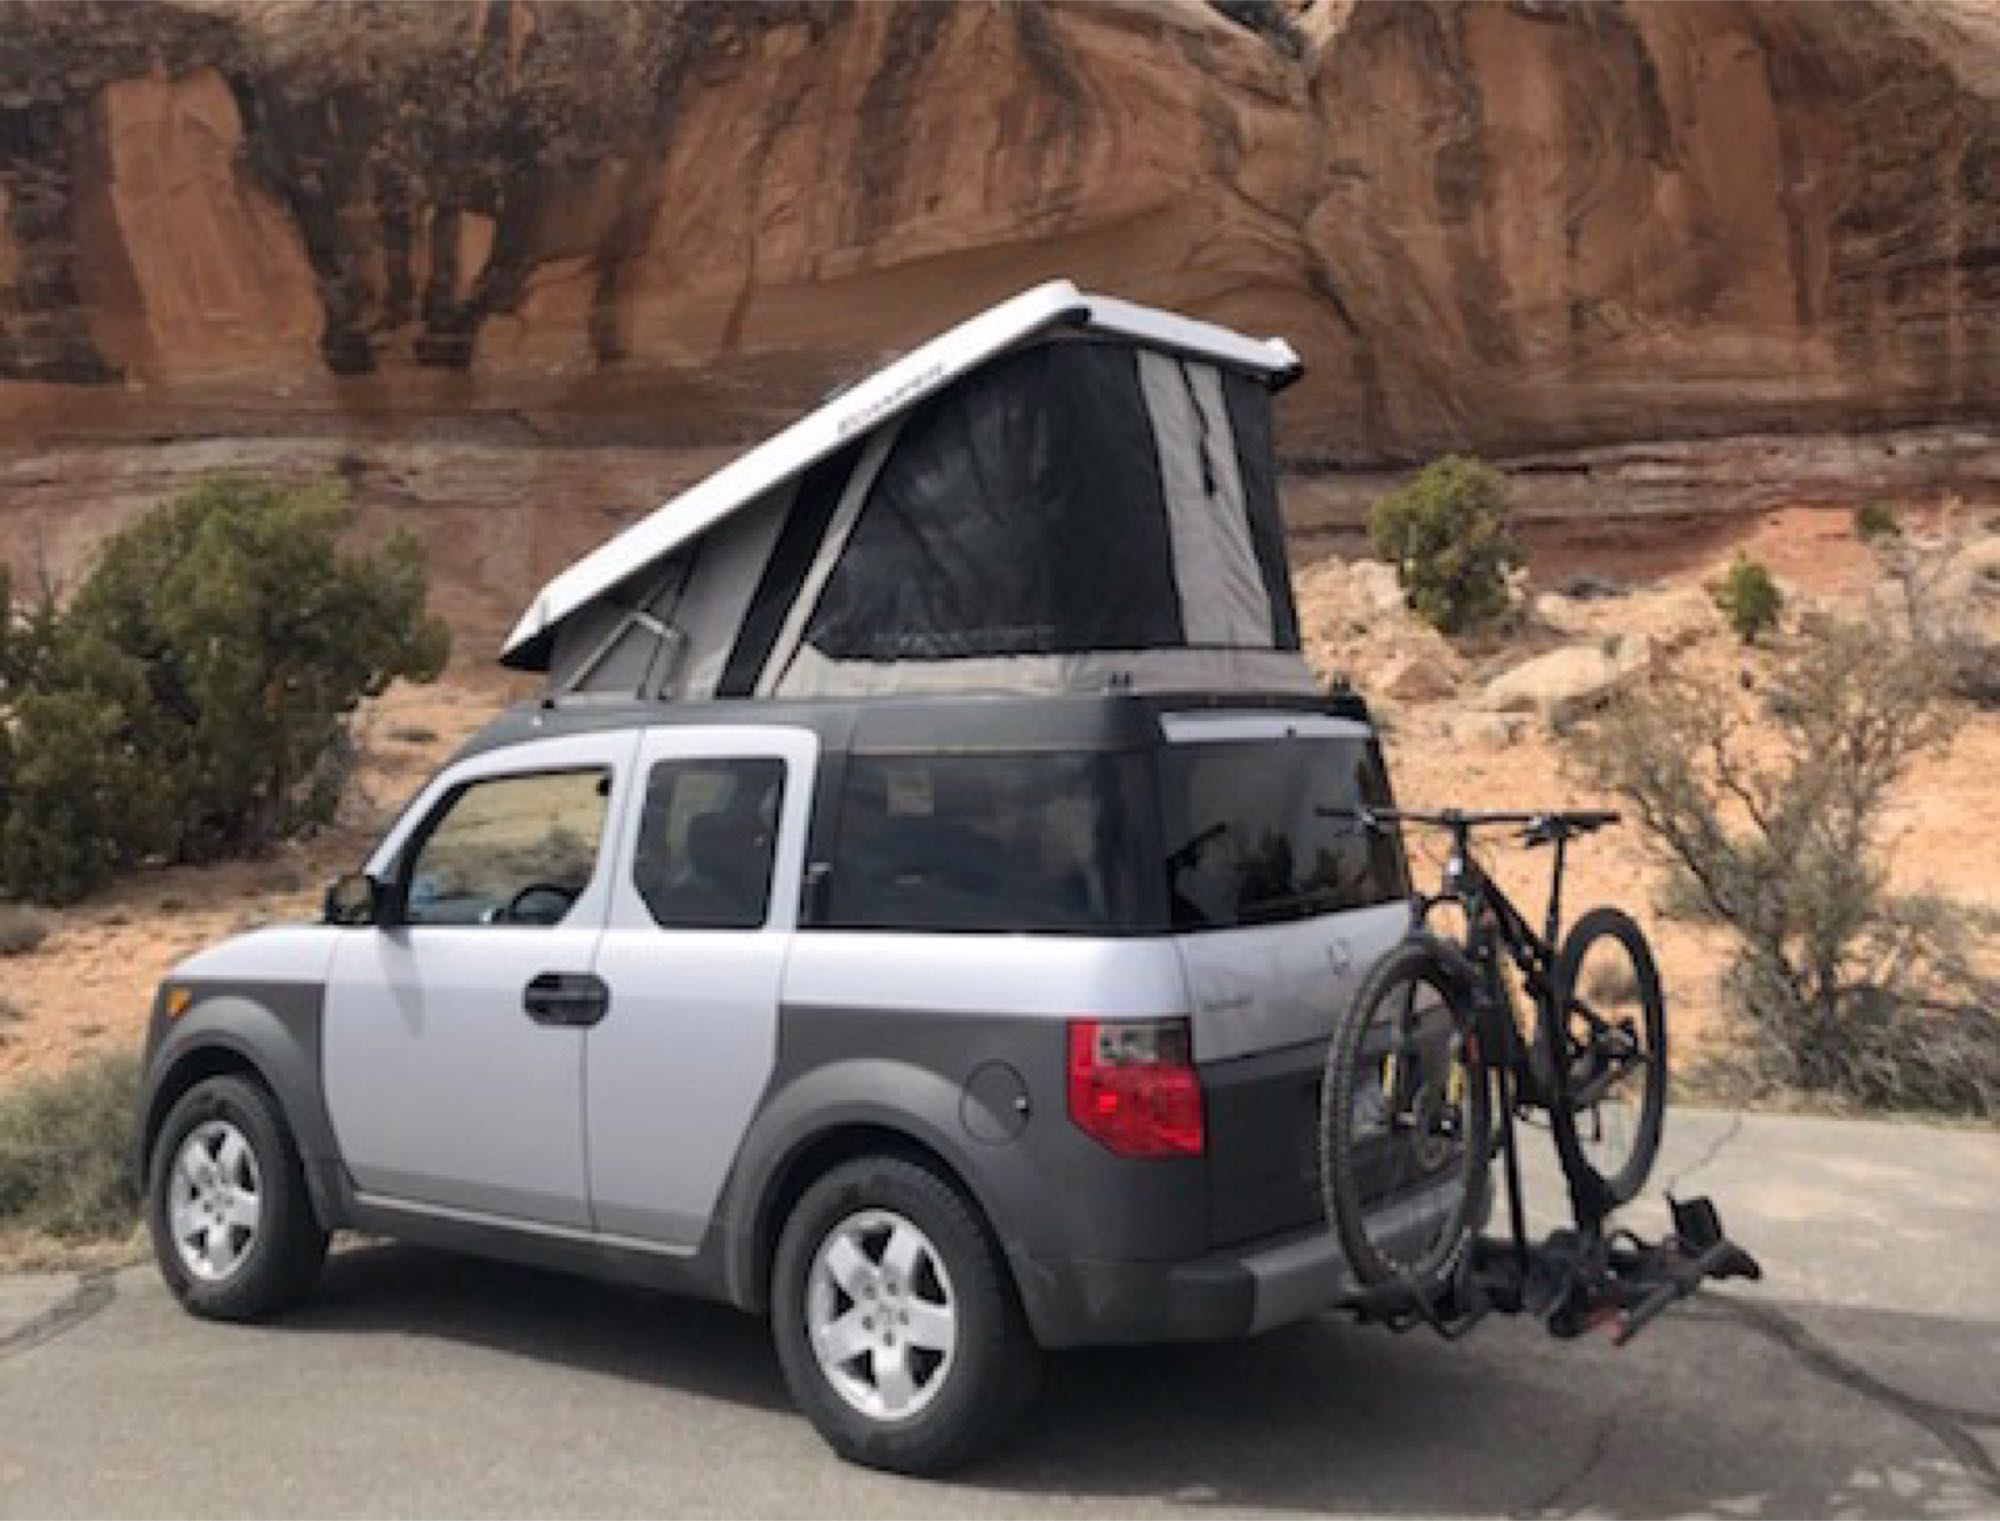 We will work with you on trips to Moab or anywhere outside the Greater Yellowstone area. Let us know!!. Other Other 2004